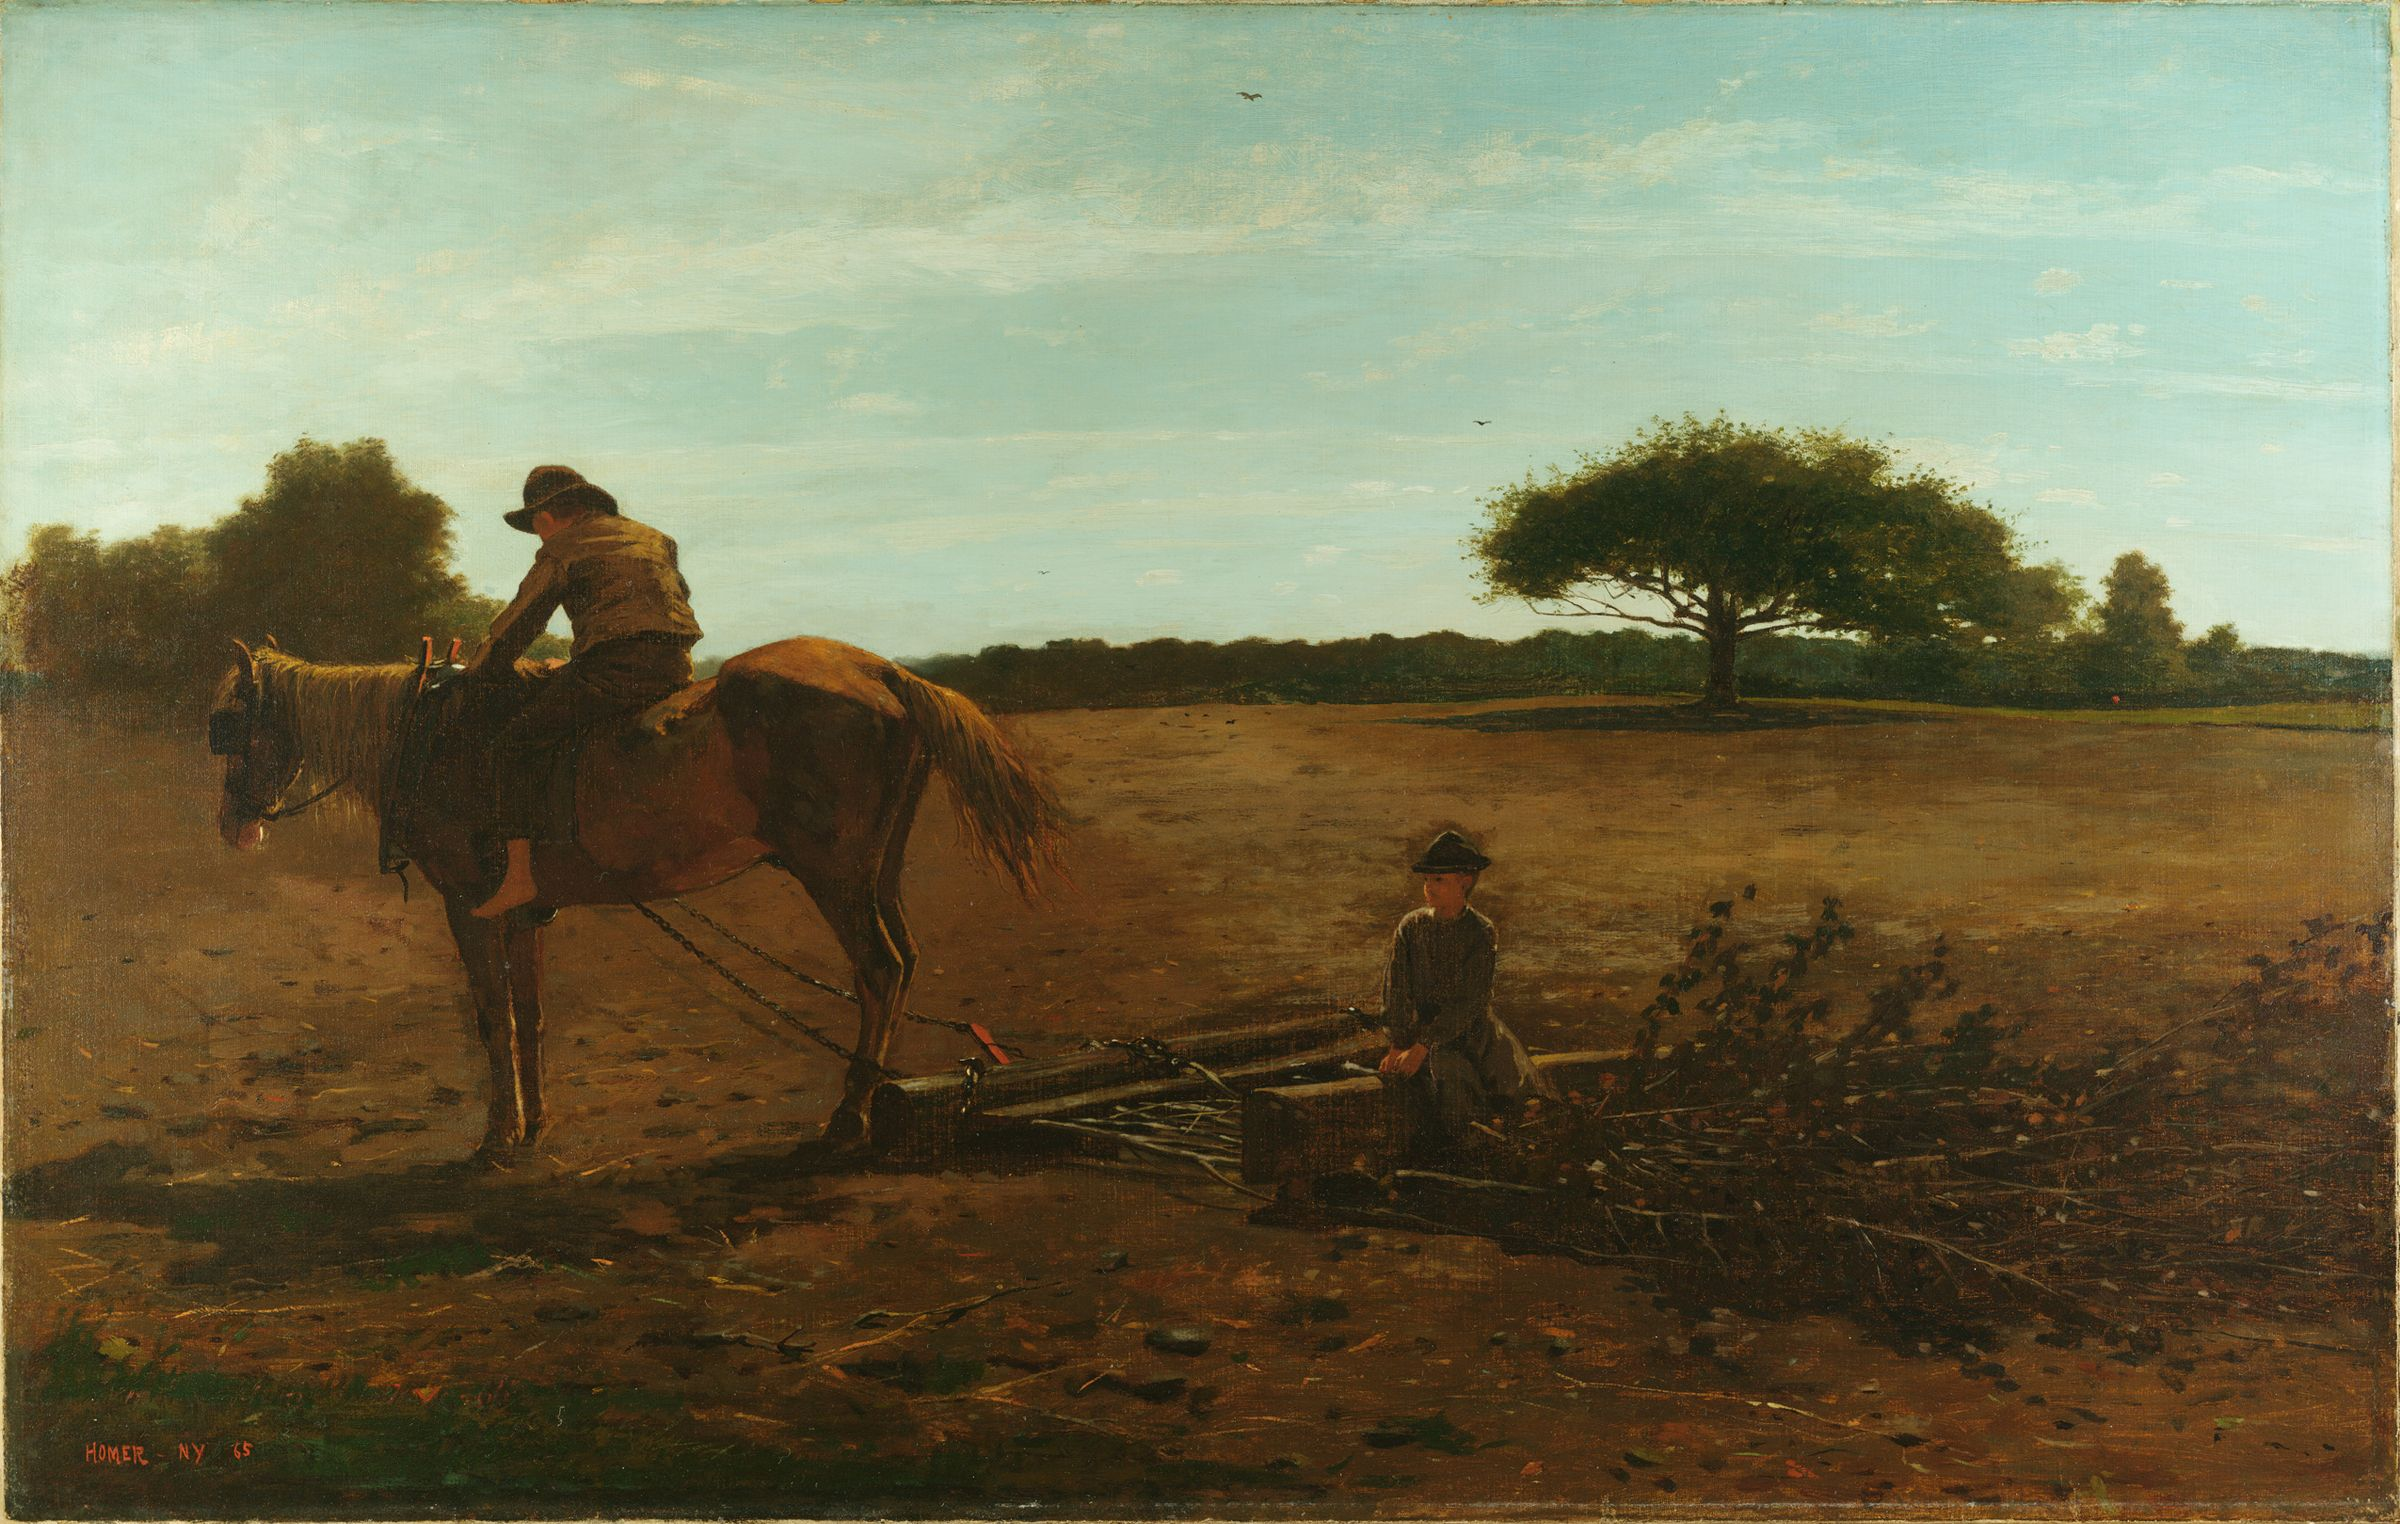 An oil painting of a boy atop a horse pulling a harrow made of short branches with another young boy sitting atop the harrow.